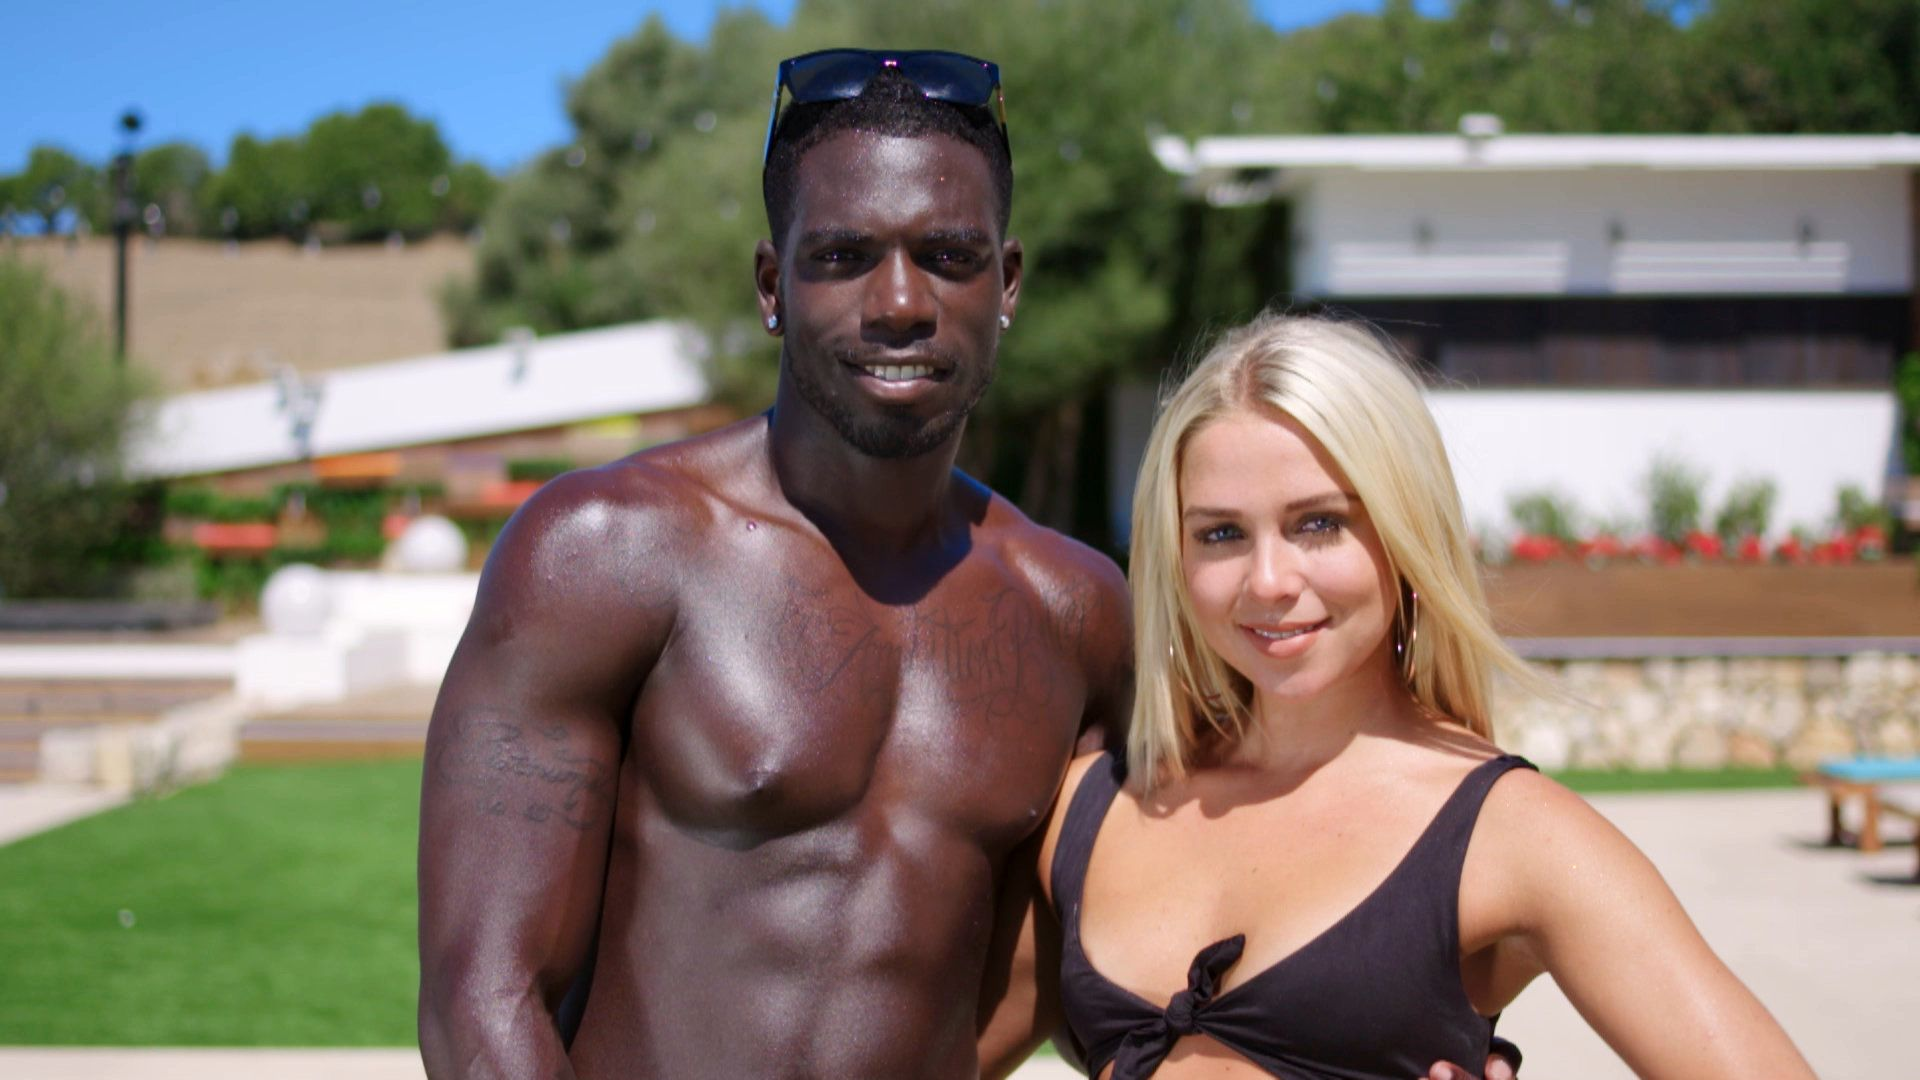 Love Island's Gabby Reveals 'Disgusting' Racial Abuse She And Marcel Have